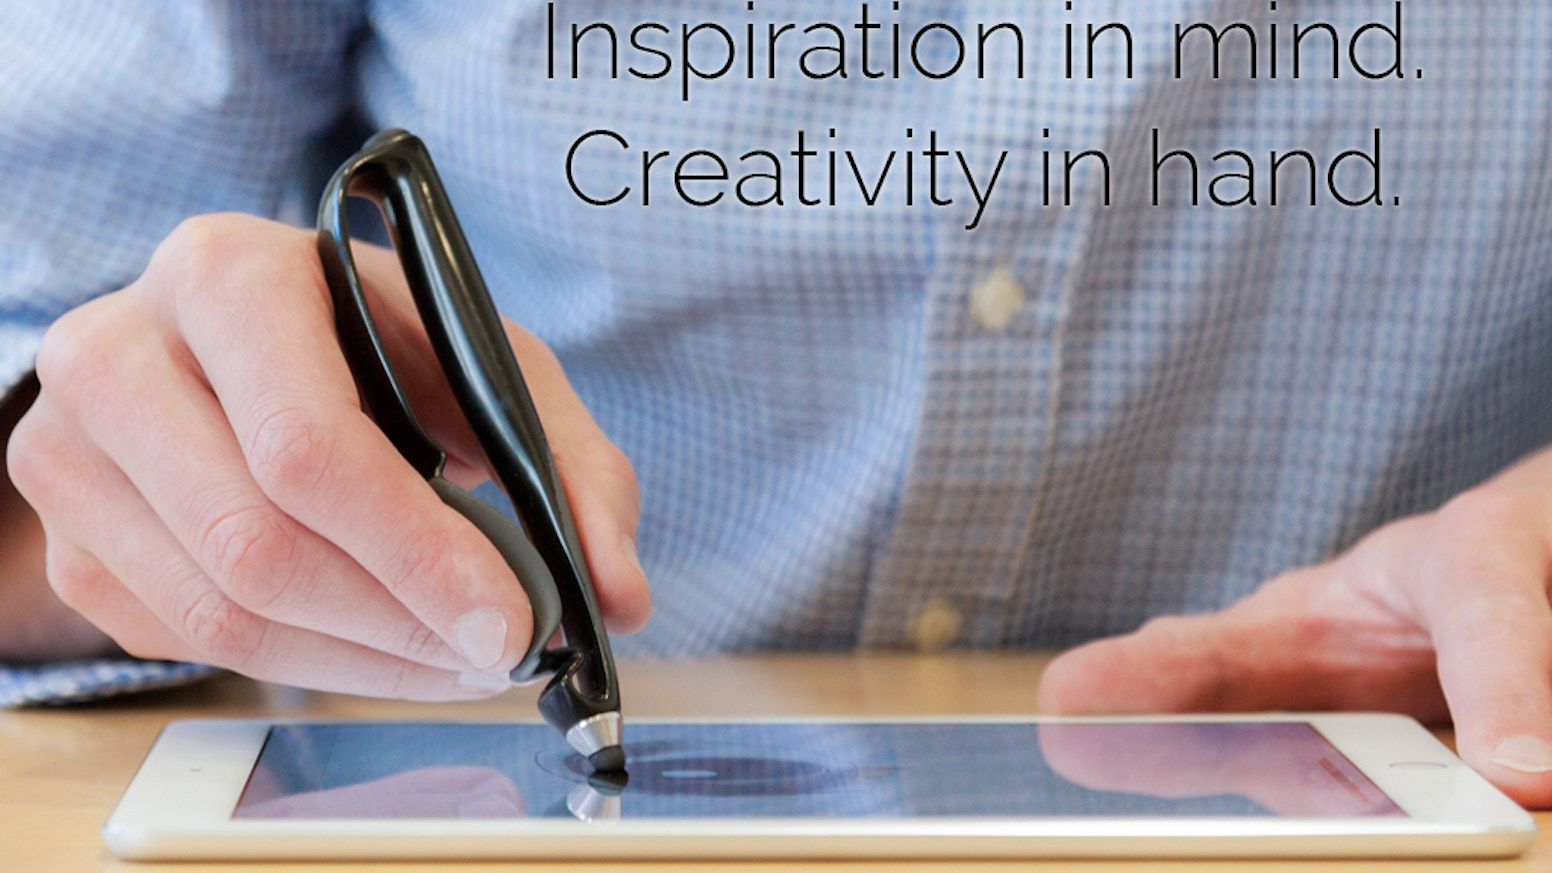 Scriba puts creative control back in your hands. Its flexible body and dynamic squeeze motion responding beautifully to your touch.